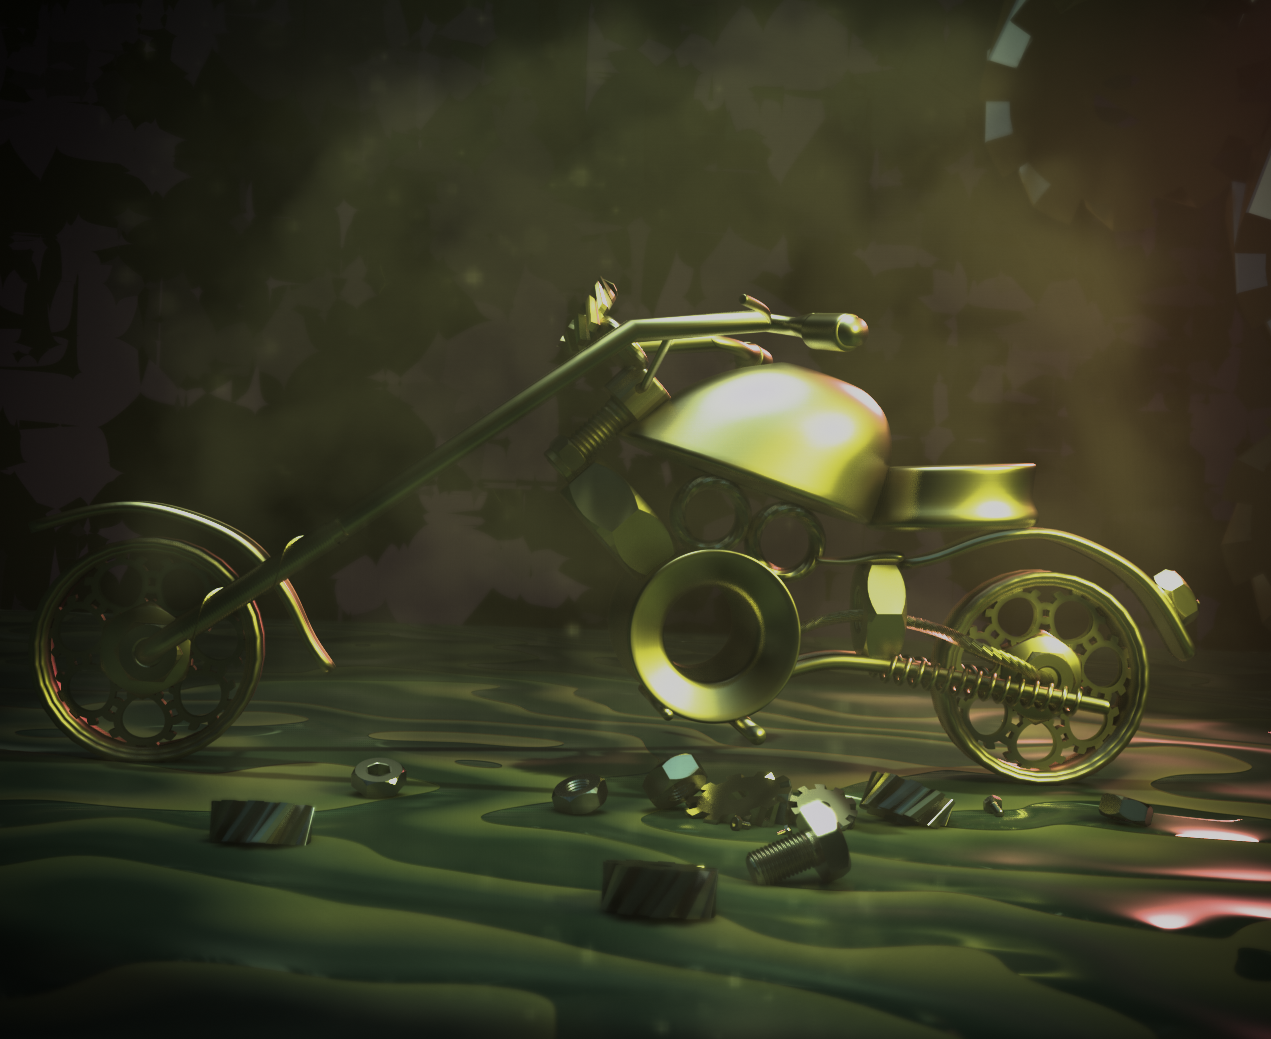 Mechanical Bike preview image 3